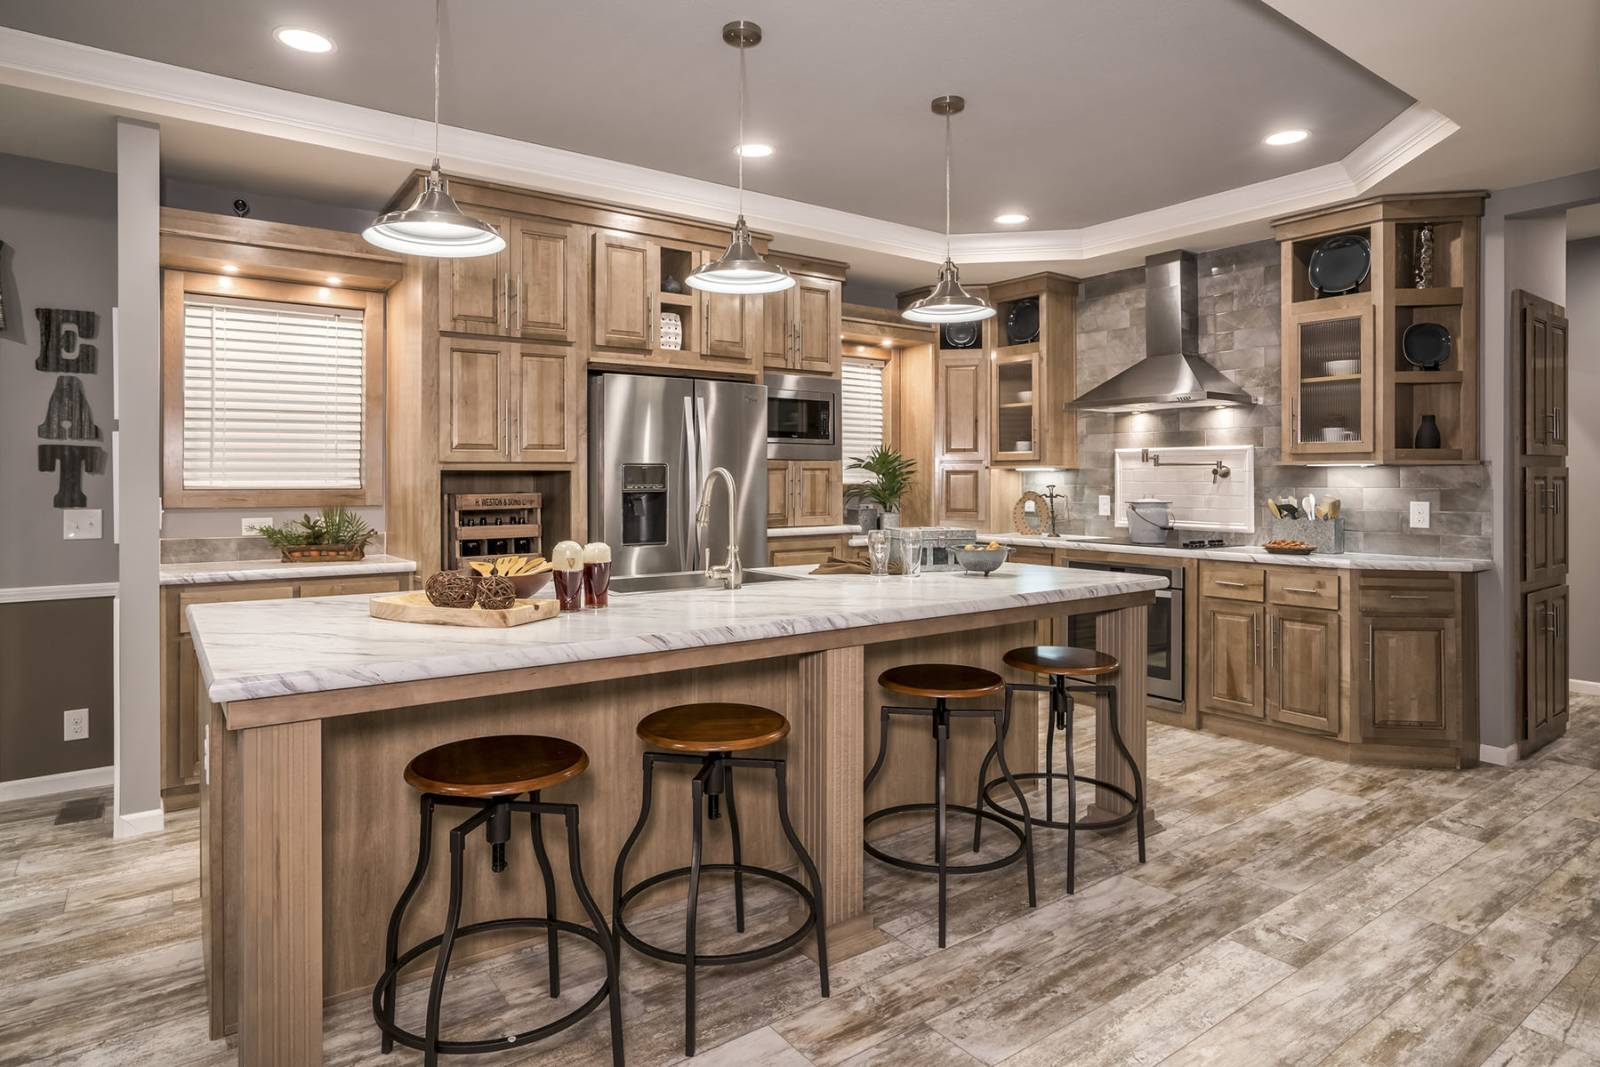 Galleries | Redman Homes - Indiana